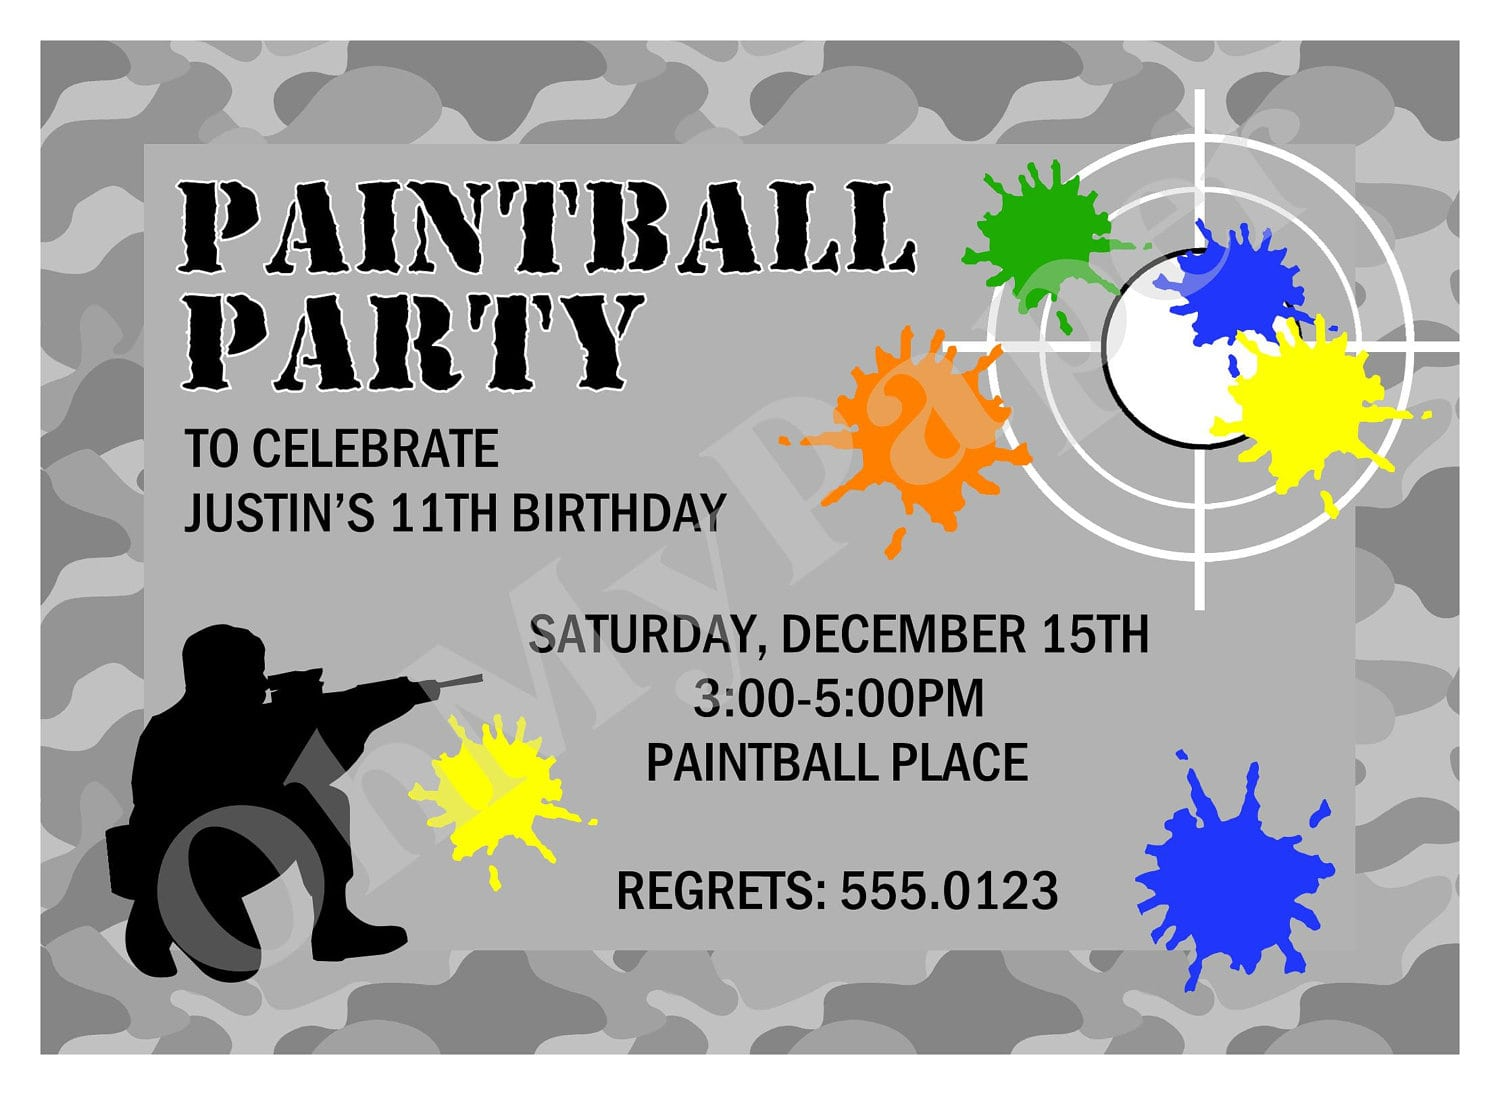 Free Paintball Party Invitation Template